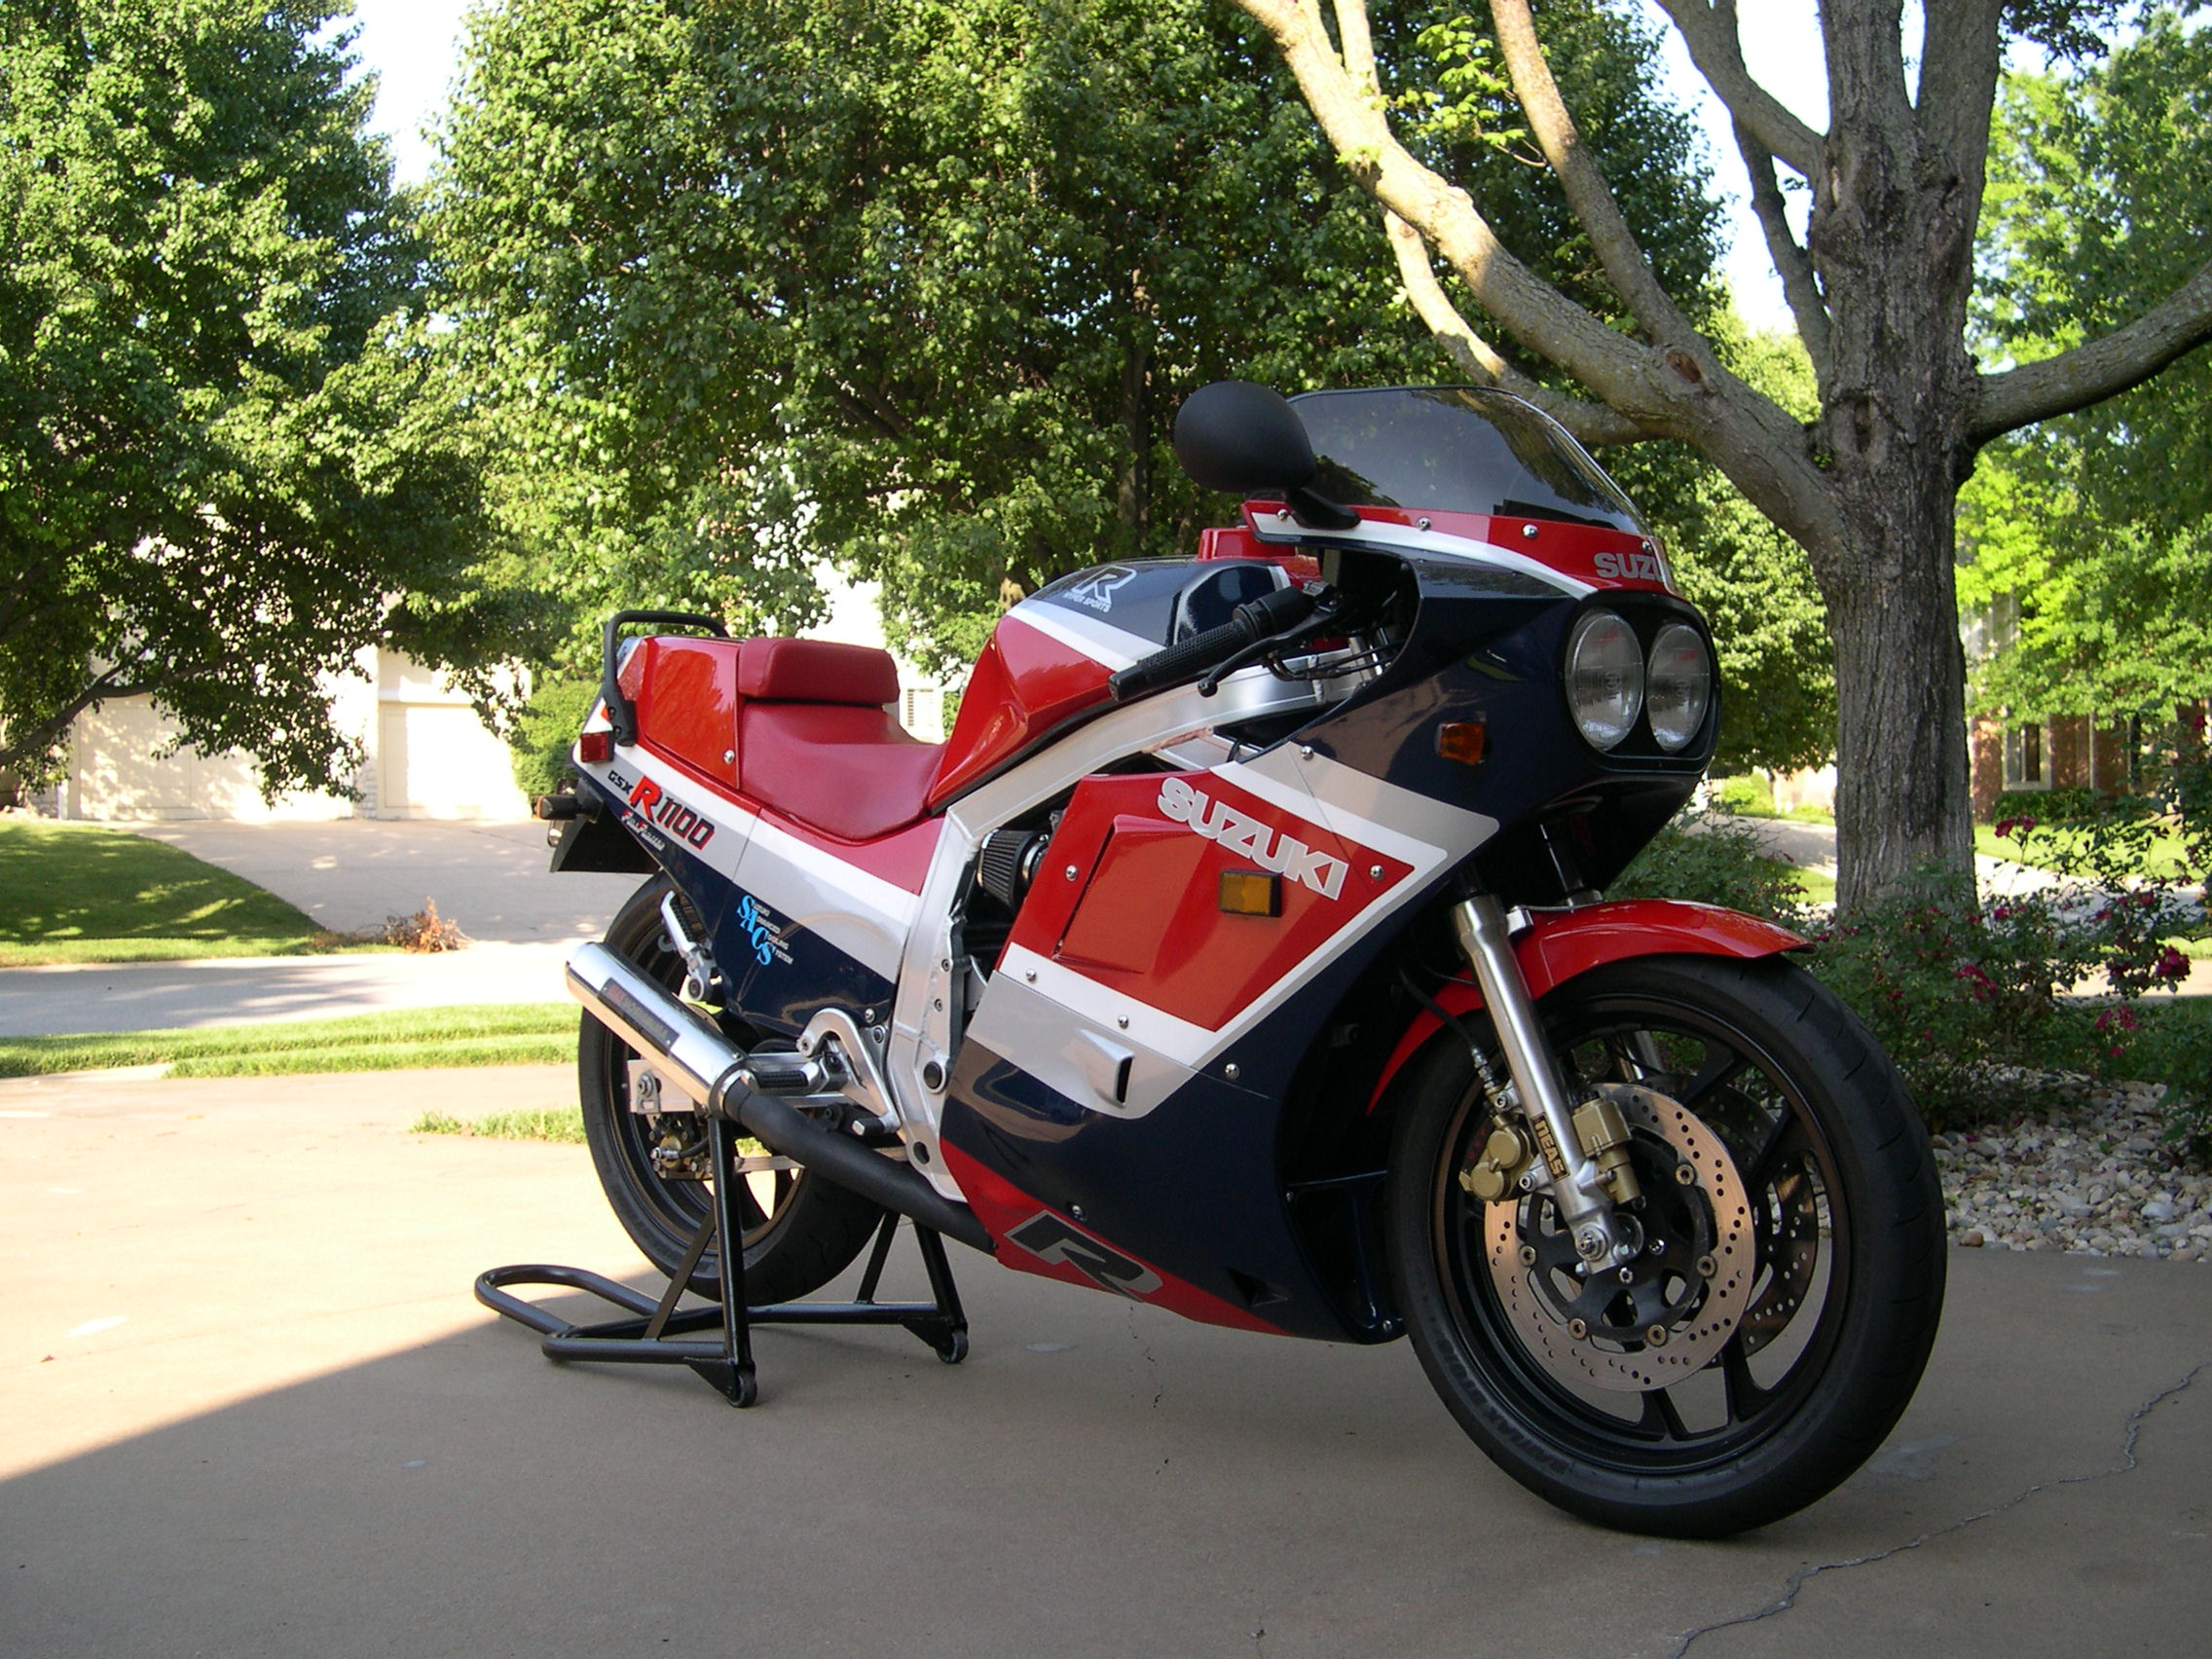 U0026 39 86 Suzuki Gsxr 1100-first Year Of A Classic